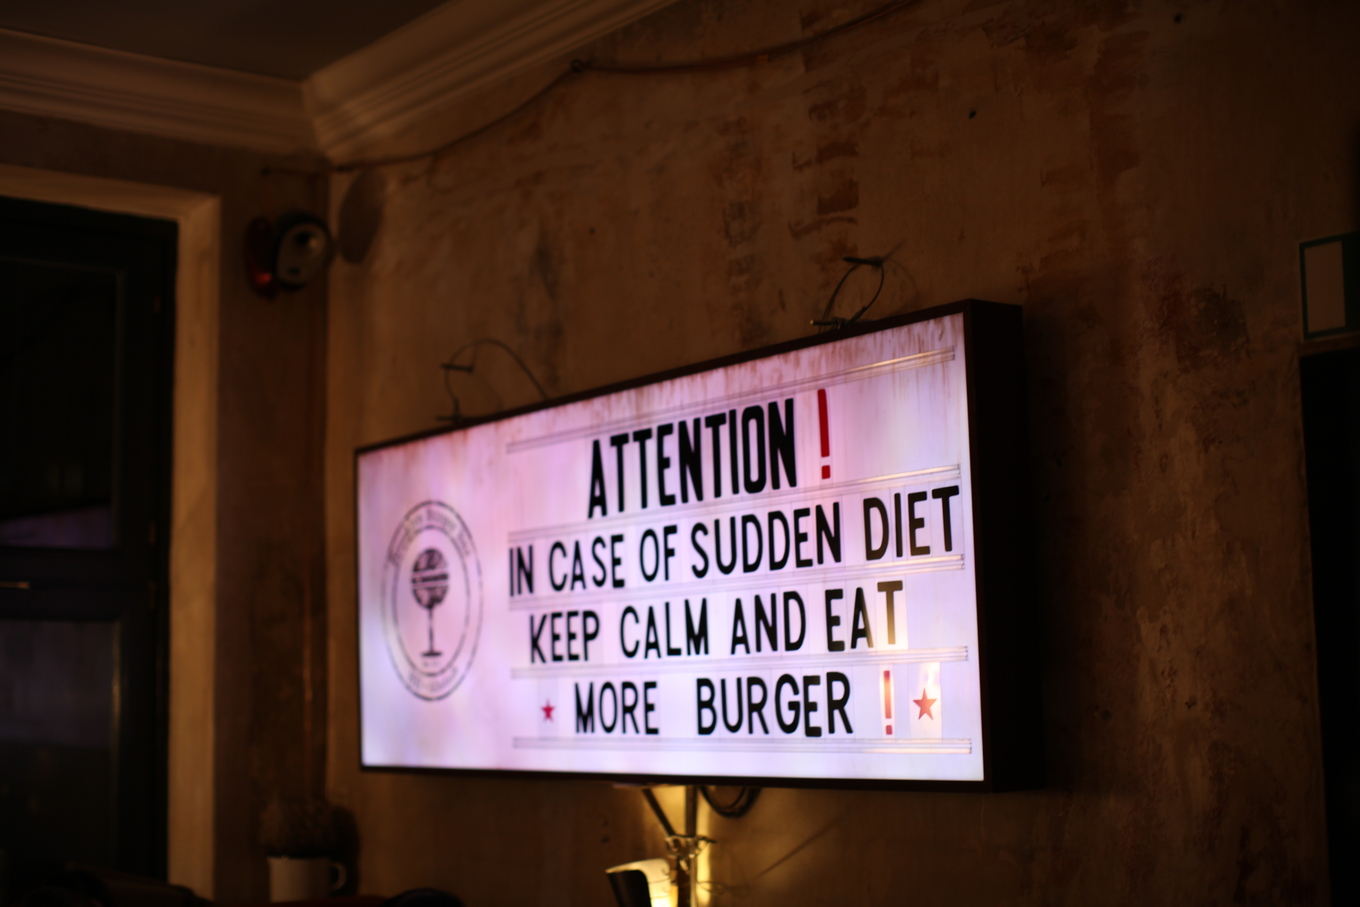 Brooklyn Burger Bar image 2